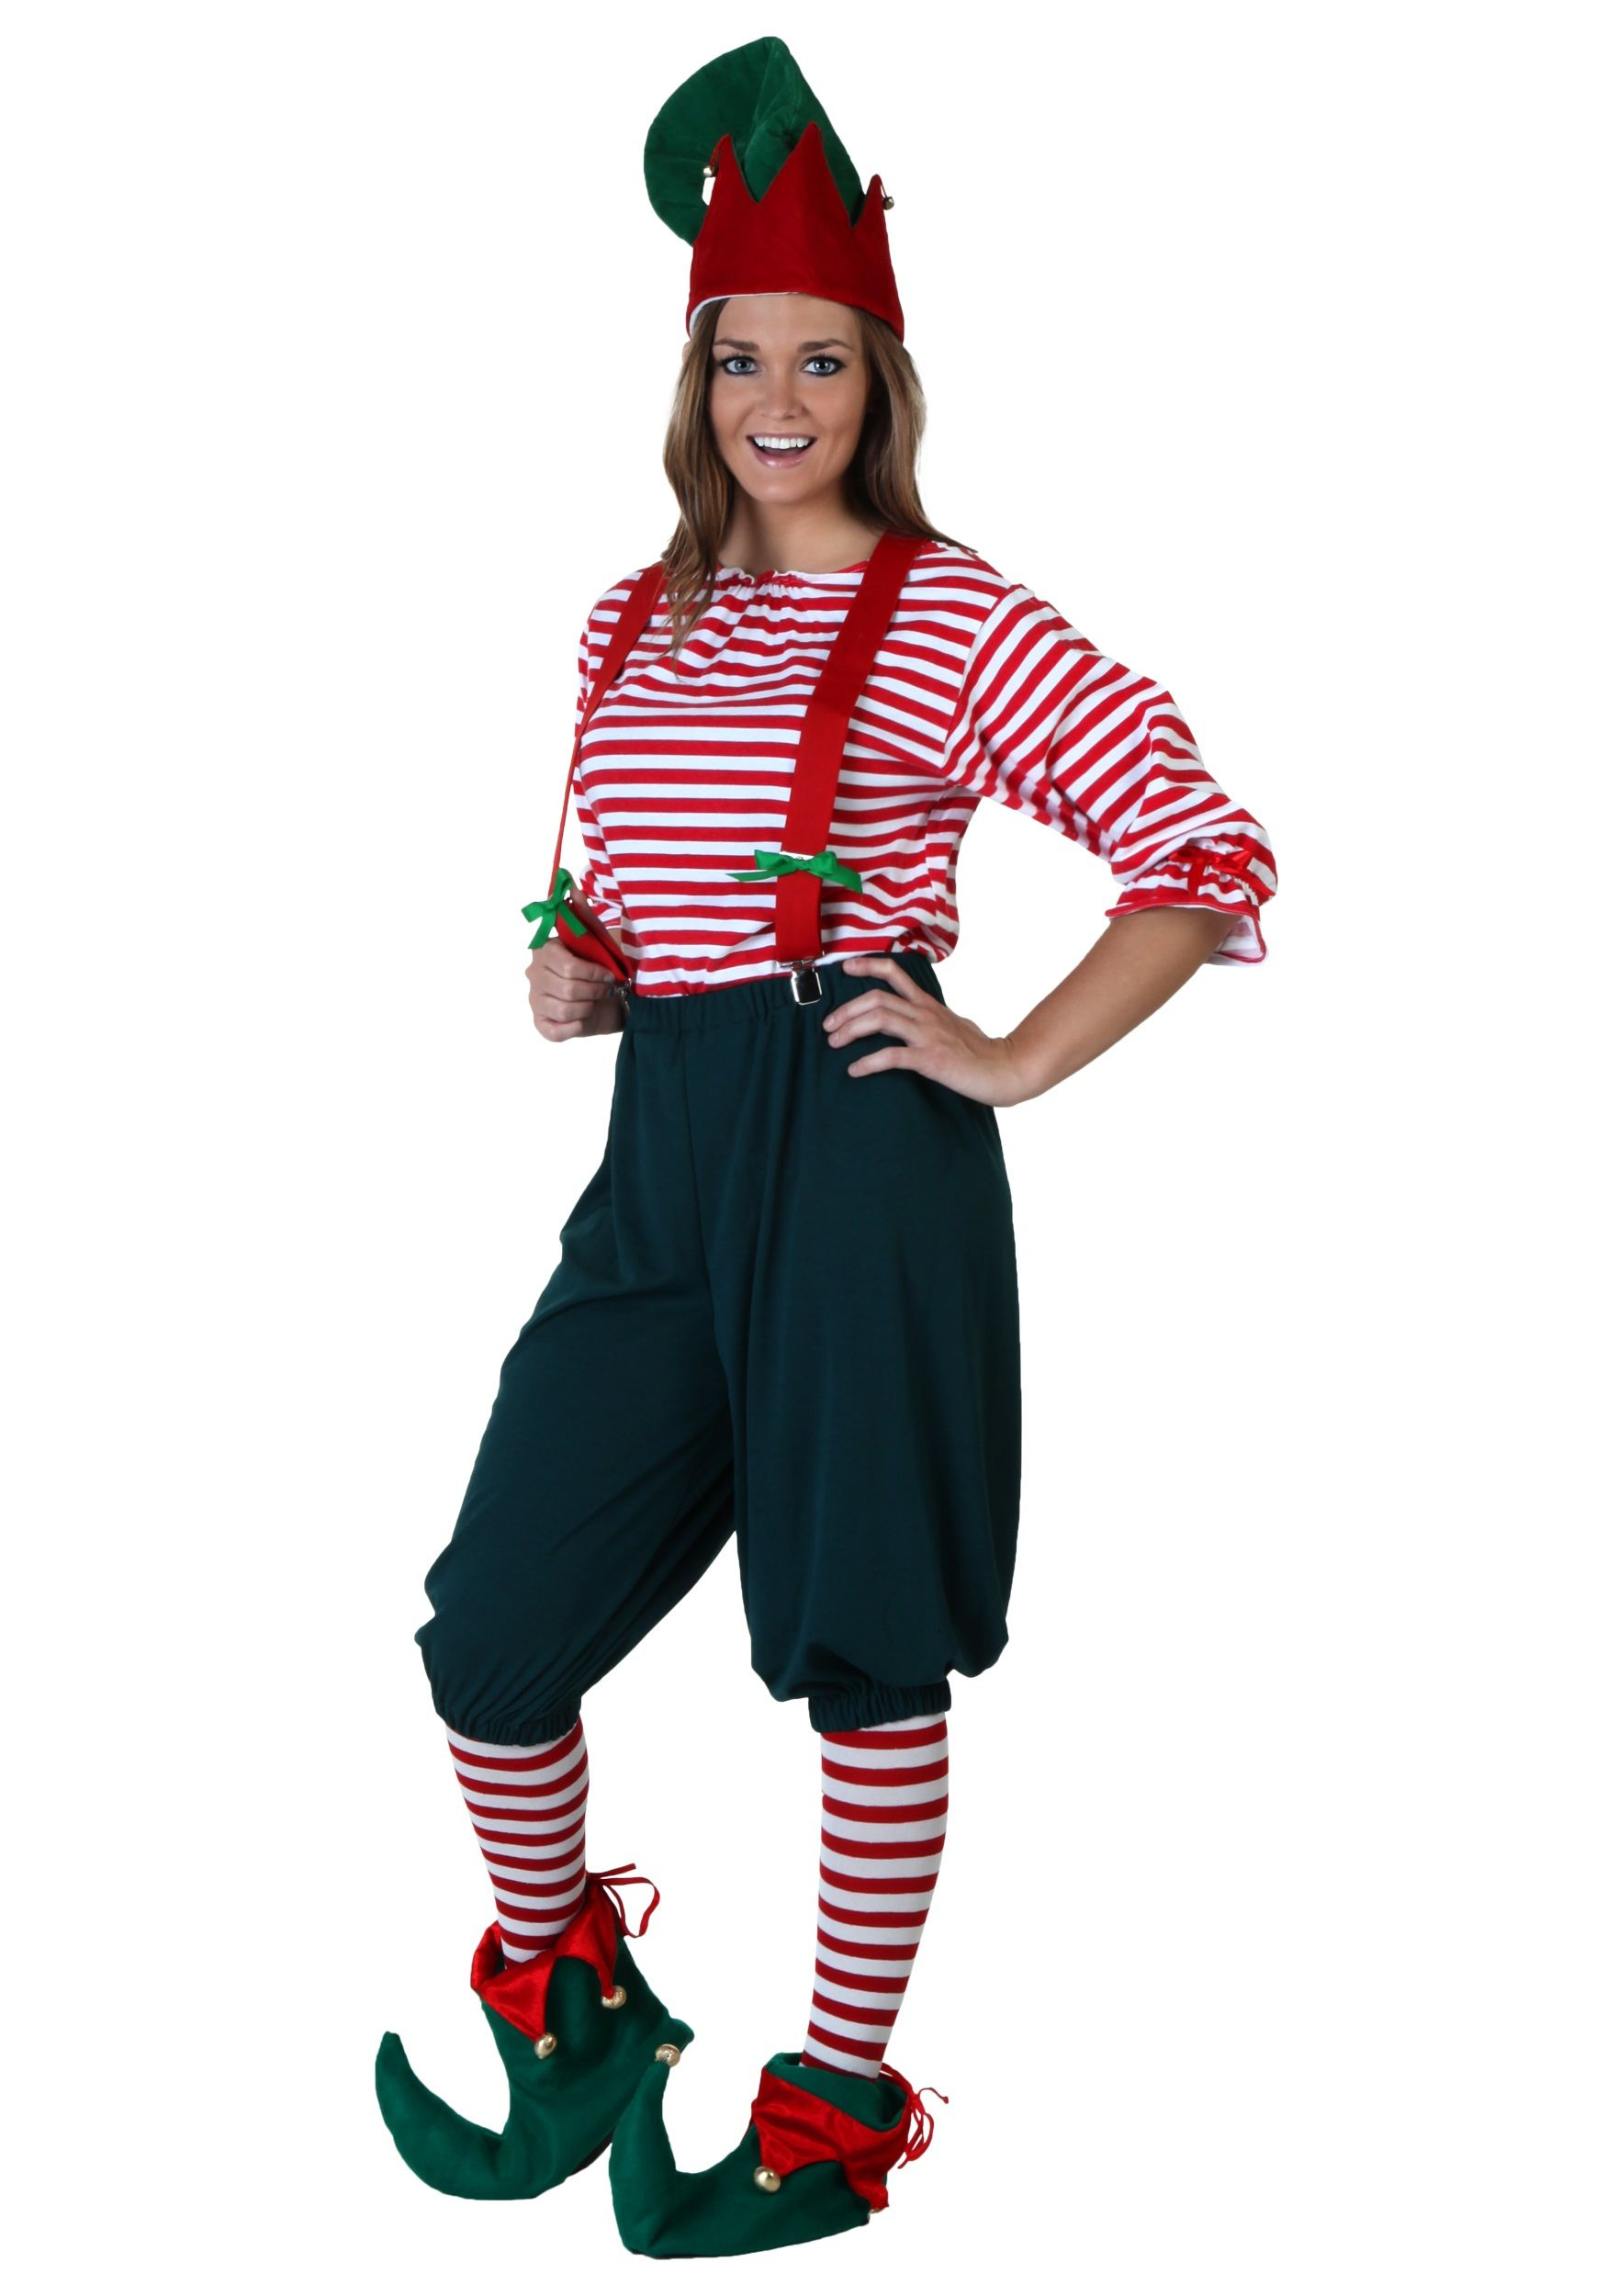 Christmas Elf Costume.Christmas Elf Costume Women Recommended Costumes Deluxe